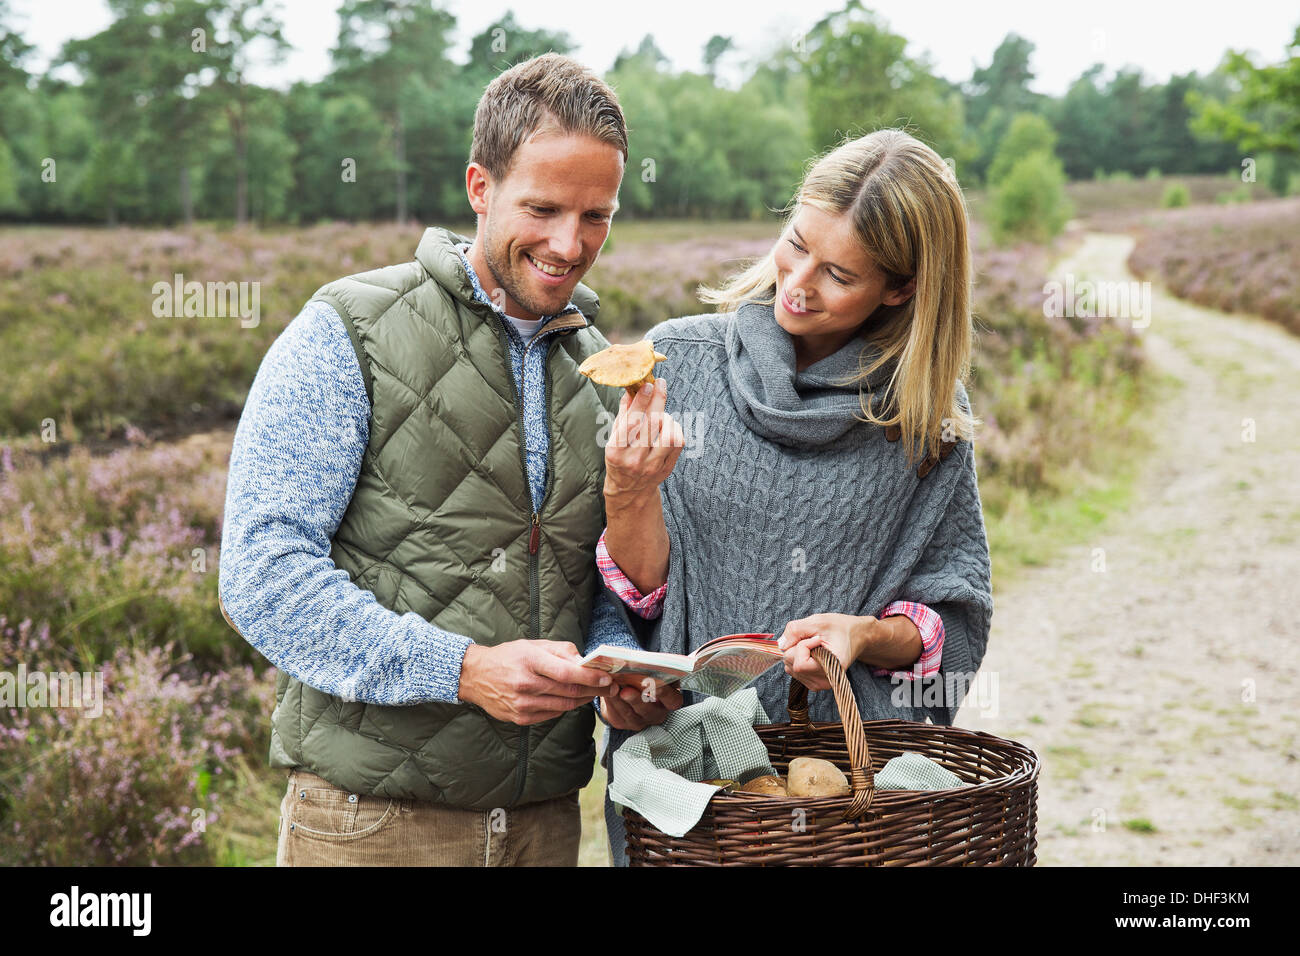 Mid adult couple foraging for mushrooms - Stock Image